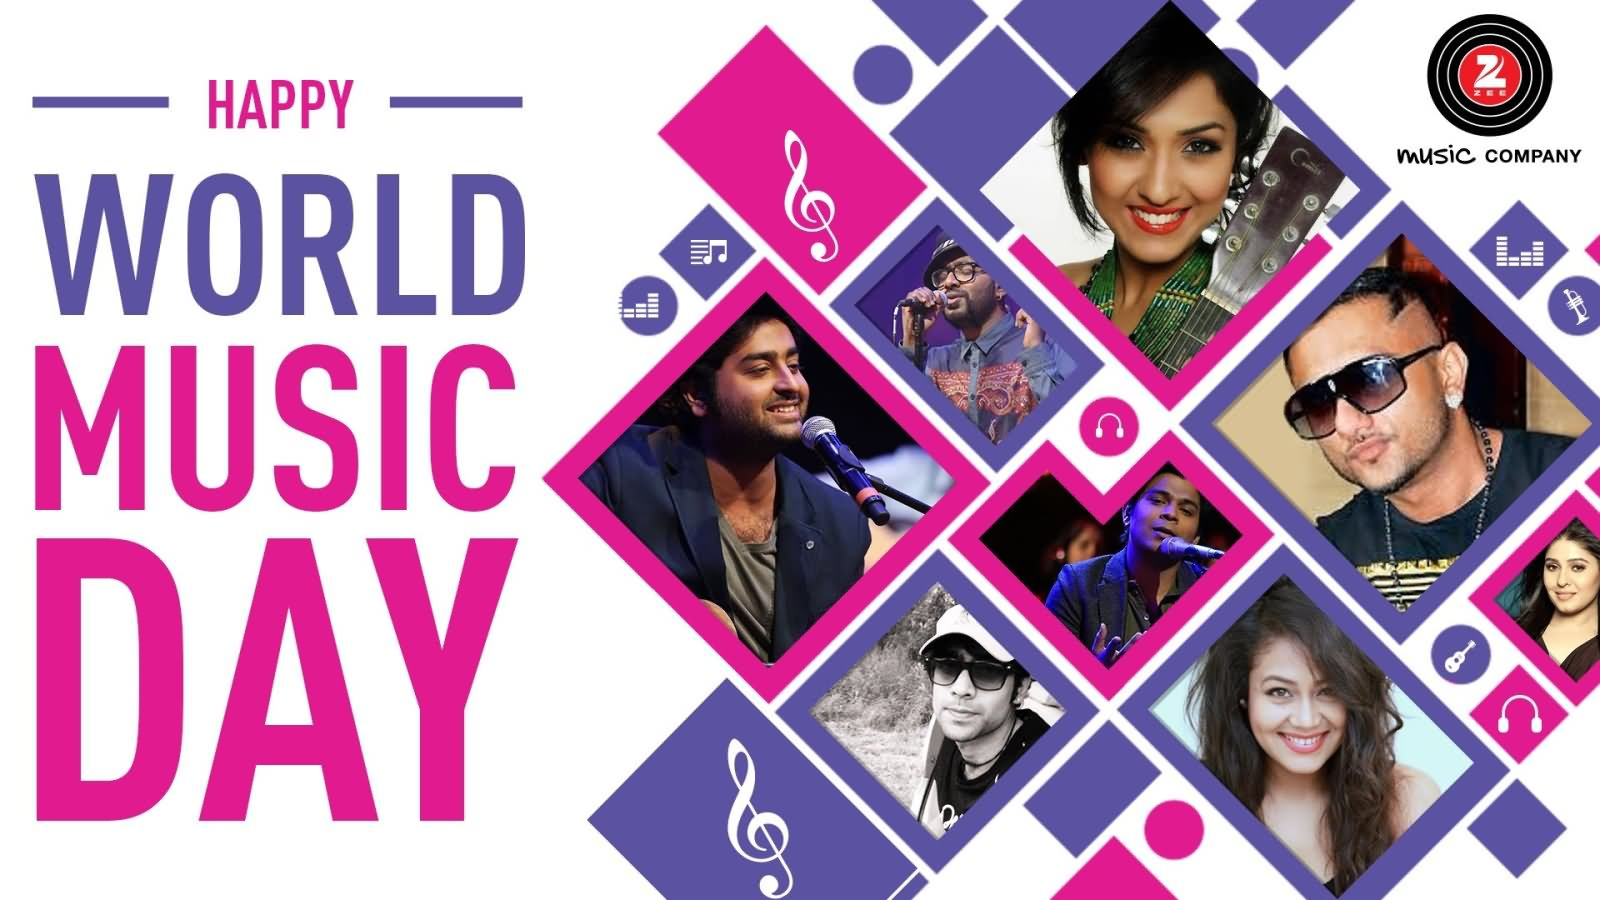 42 Incredible Pictures Of World Music Day Greetings 1600x900